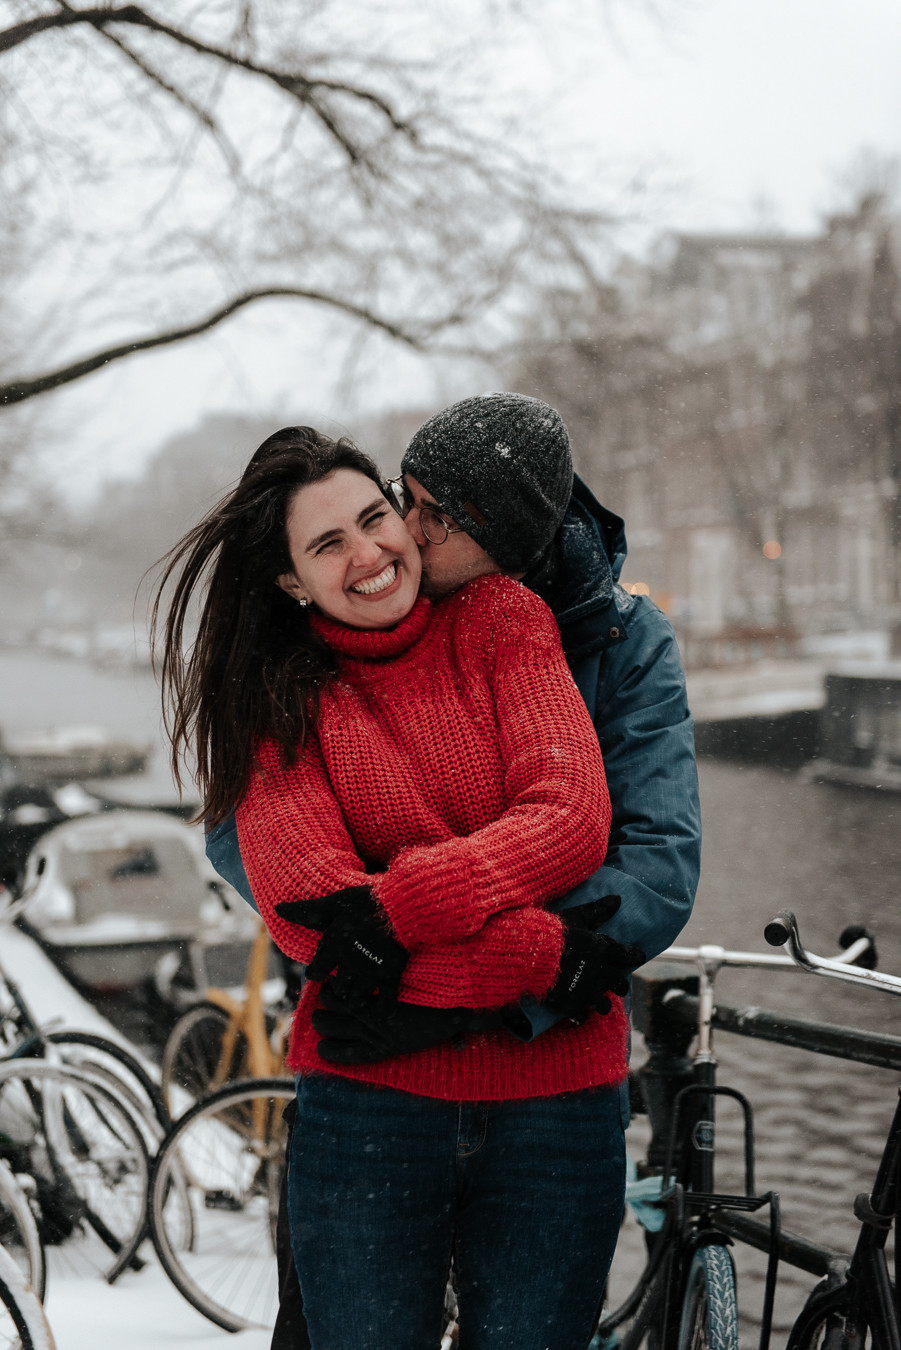 Amsterdam fotografie | Amsterdam Canals Photoshoot